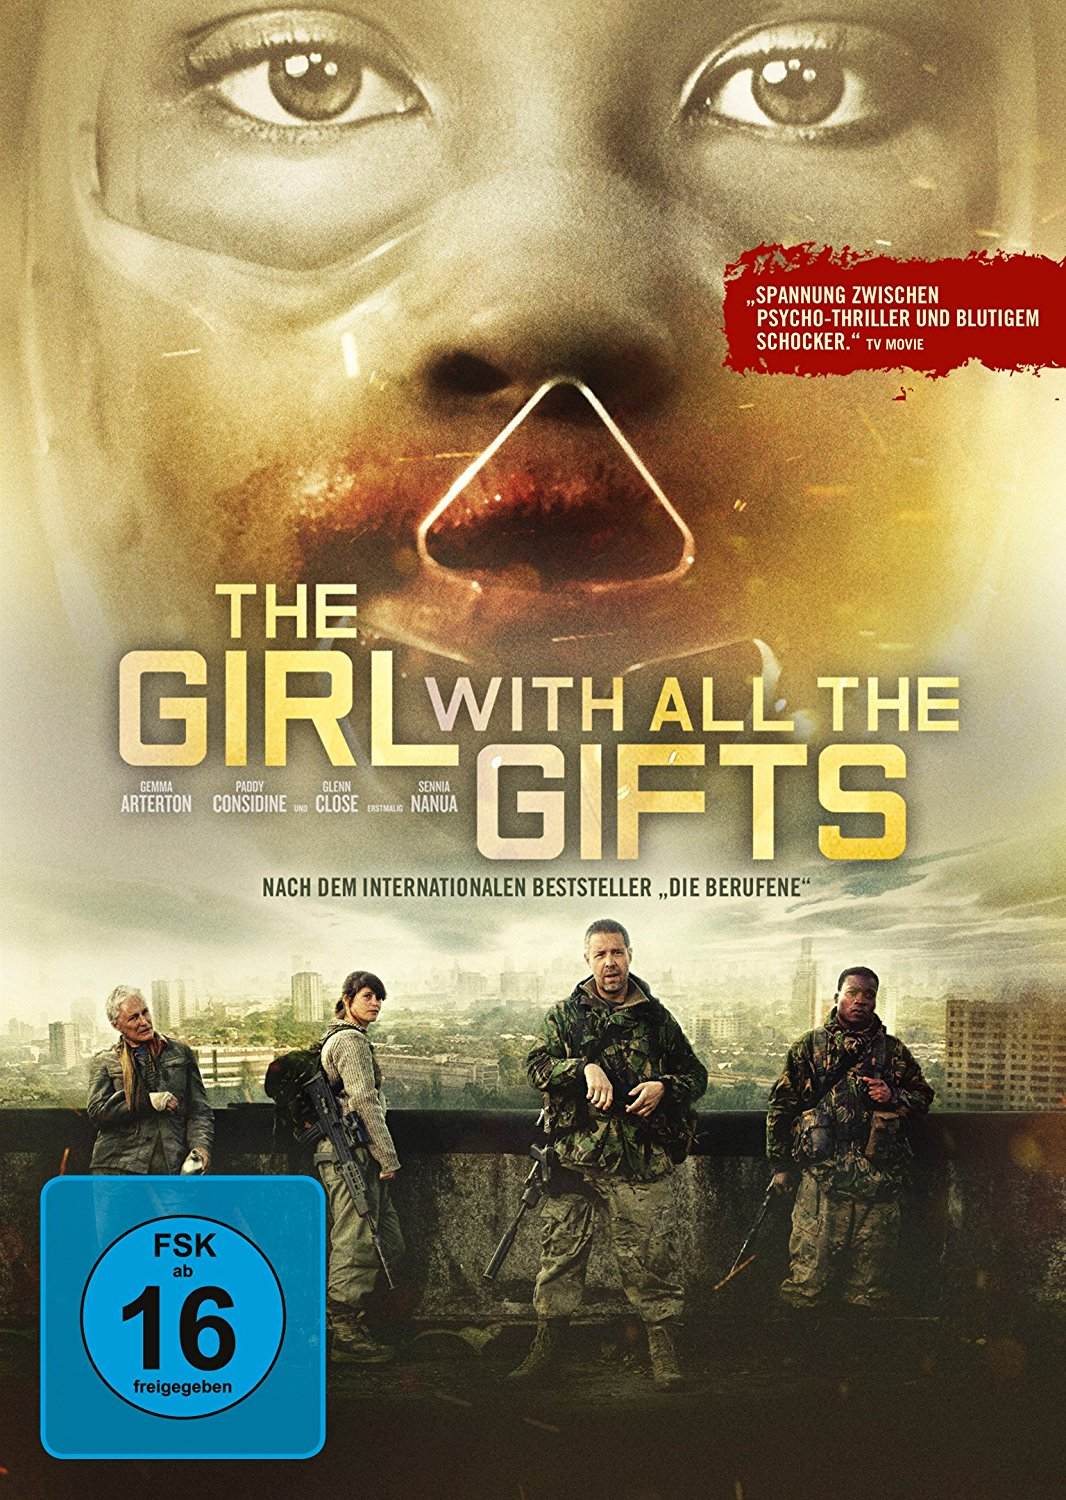 The Girl with All the Gifts - Film 2016 - Scary-Movies.de